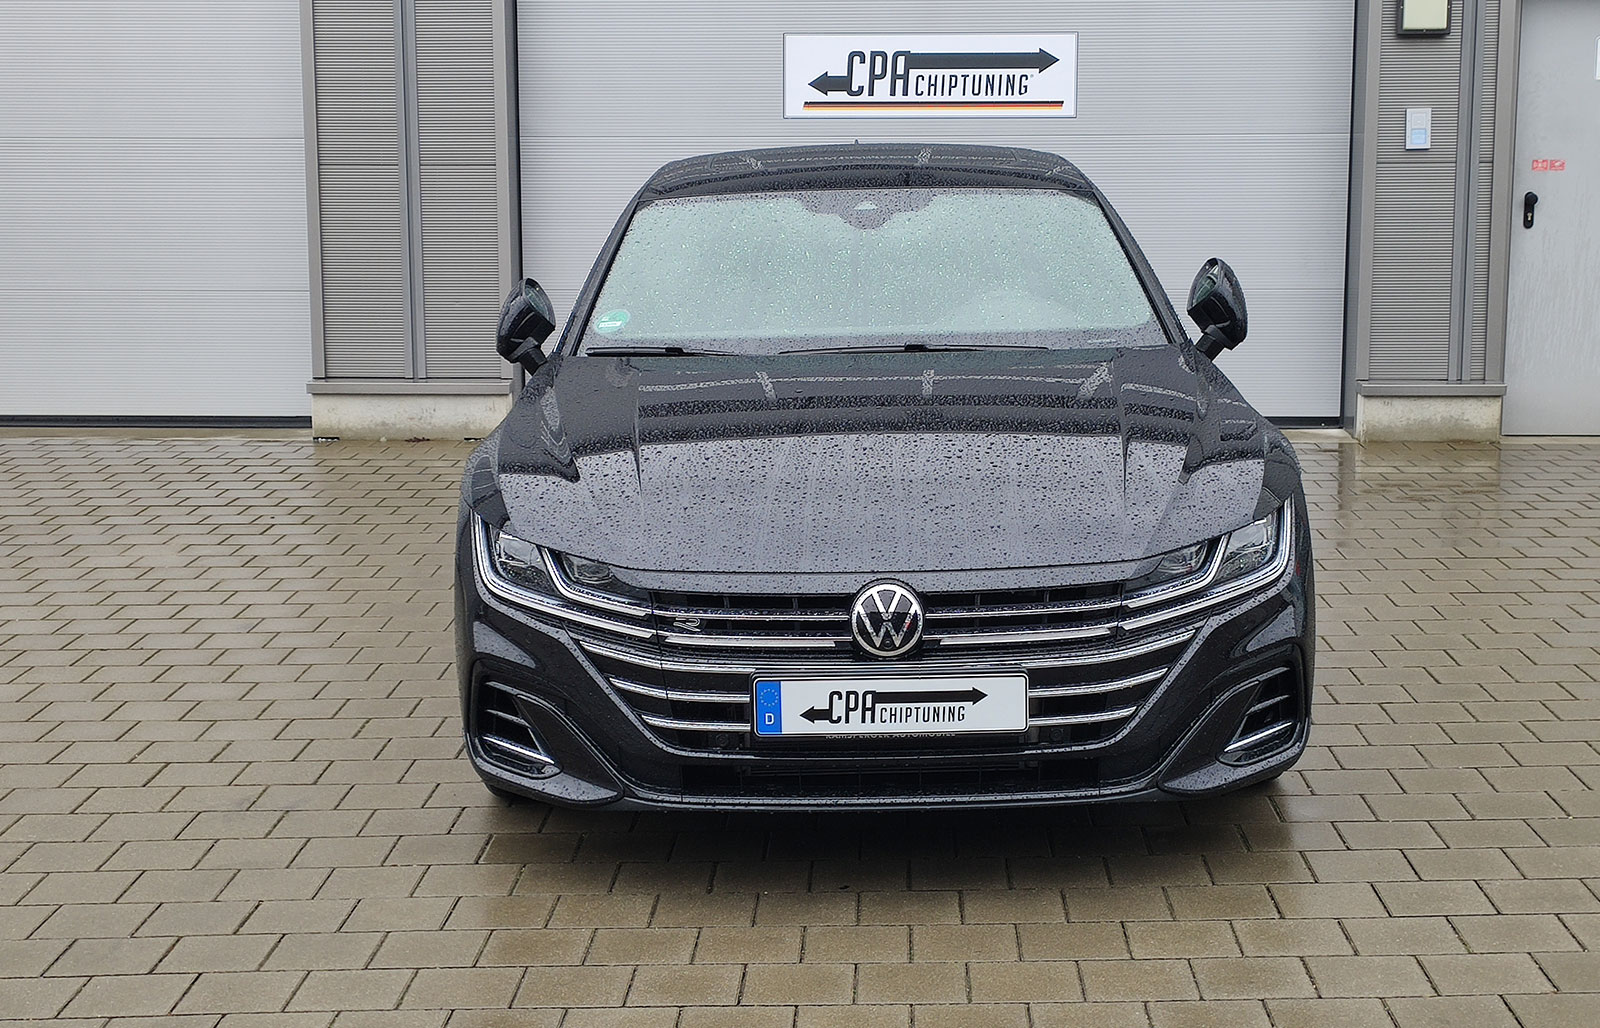 The new lifestyle truck VW Arteon Shooting Brake being tested at CPA Performance